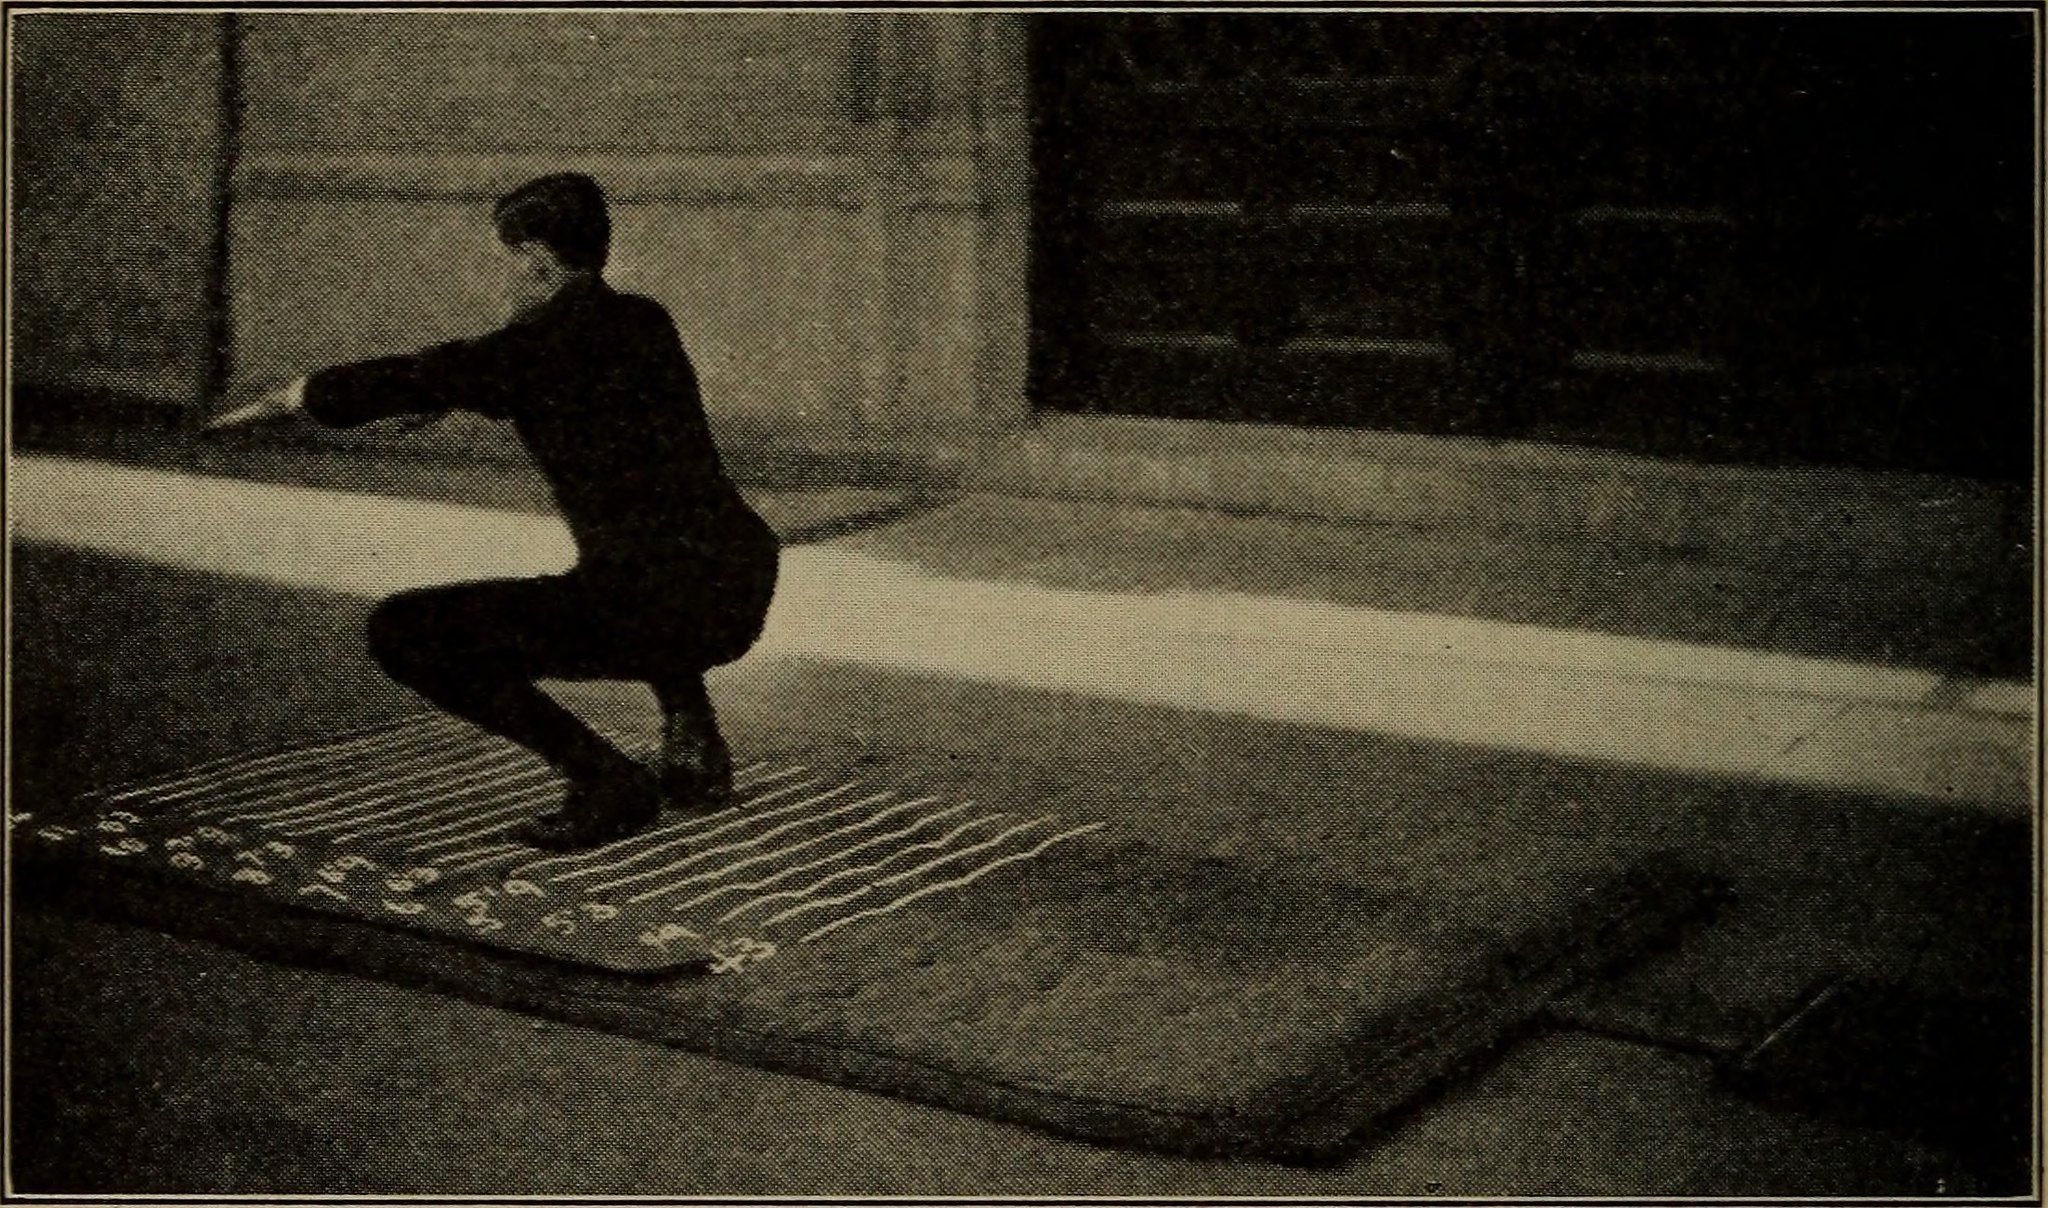 Figure from the book New rational athletics for boys and girls (1917) in the [Internet Archive Book Images](https://www.flickr.com/photos/internetarchivebookimages/14597595828/)